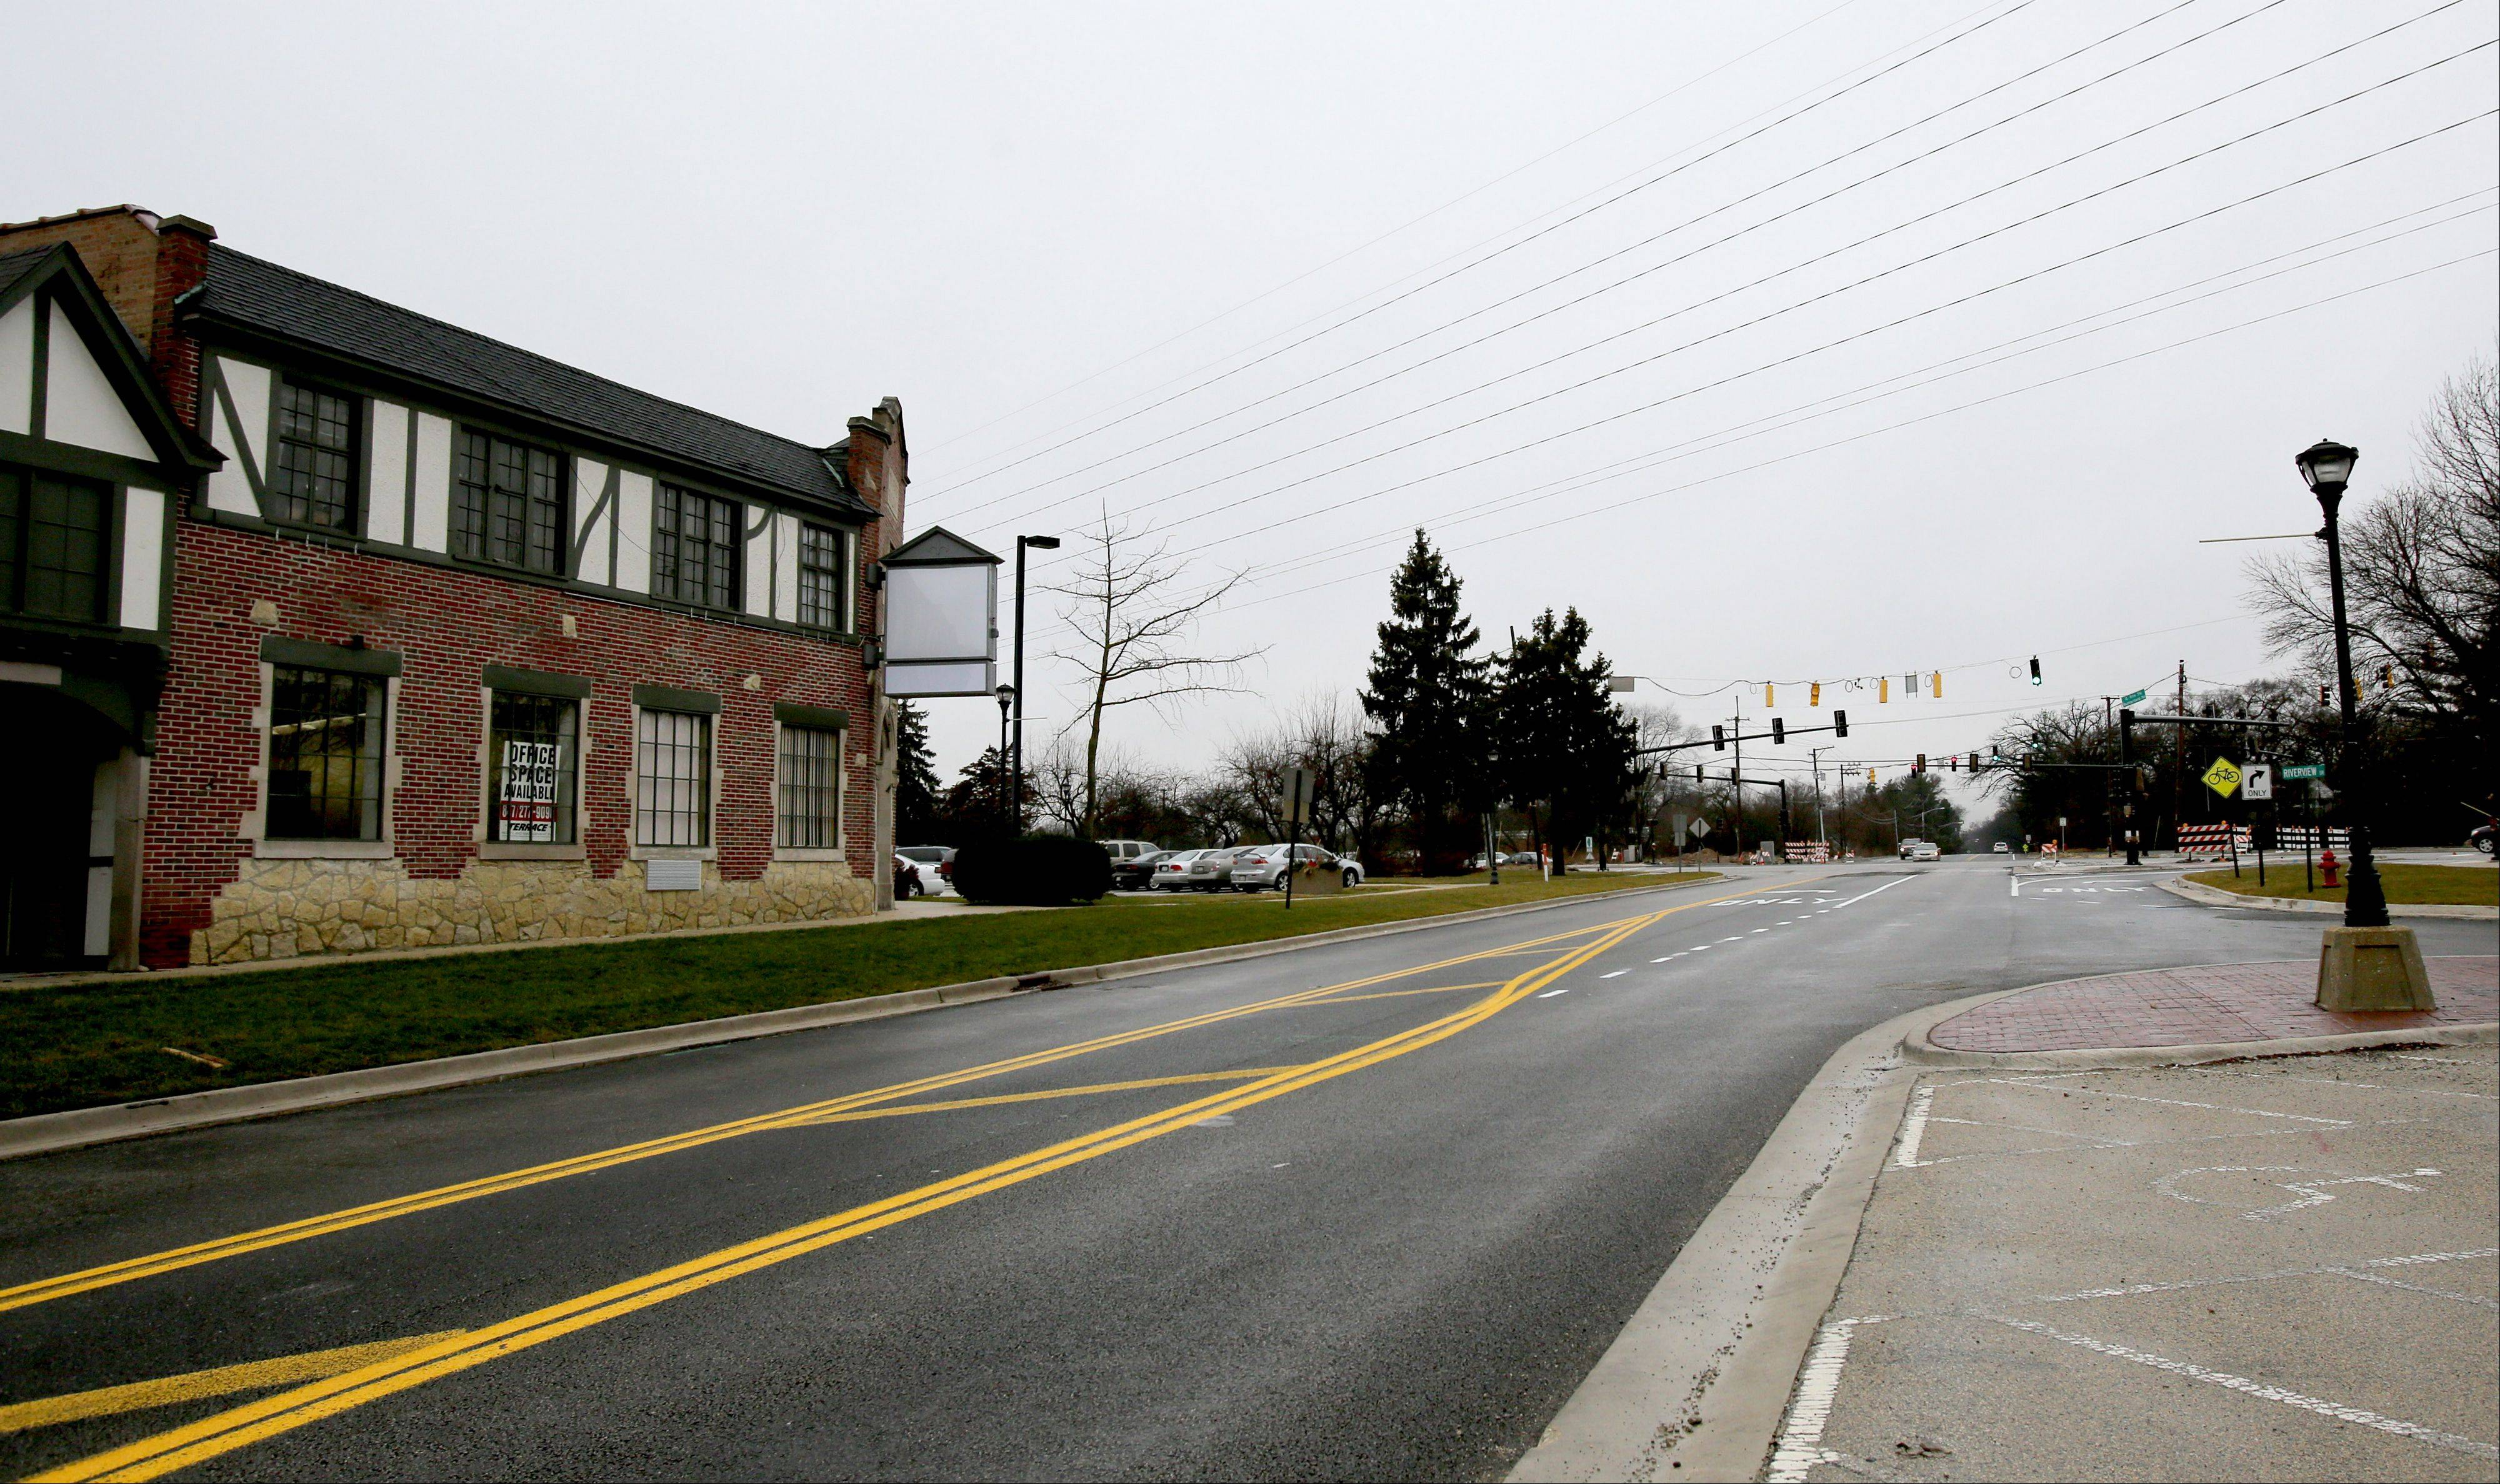 Warrenville is looking to create a tax increment financing district to facilitate redevelopment of two areas in the city, including the Civic Center near the intersection of Butterfield and Batavia roads.